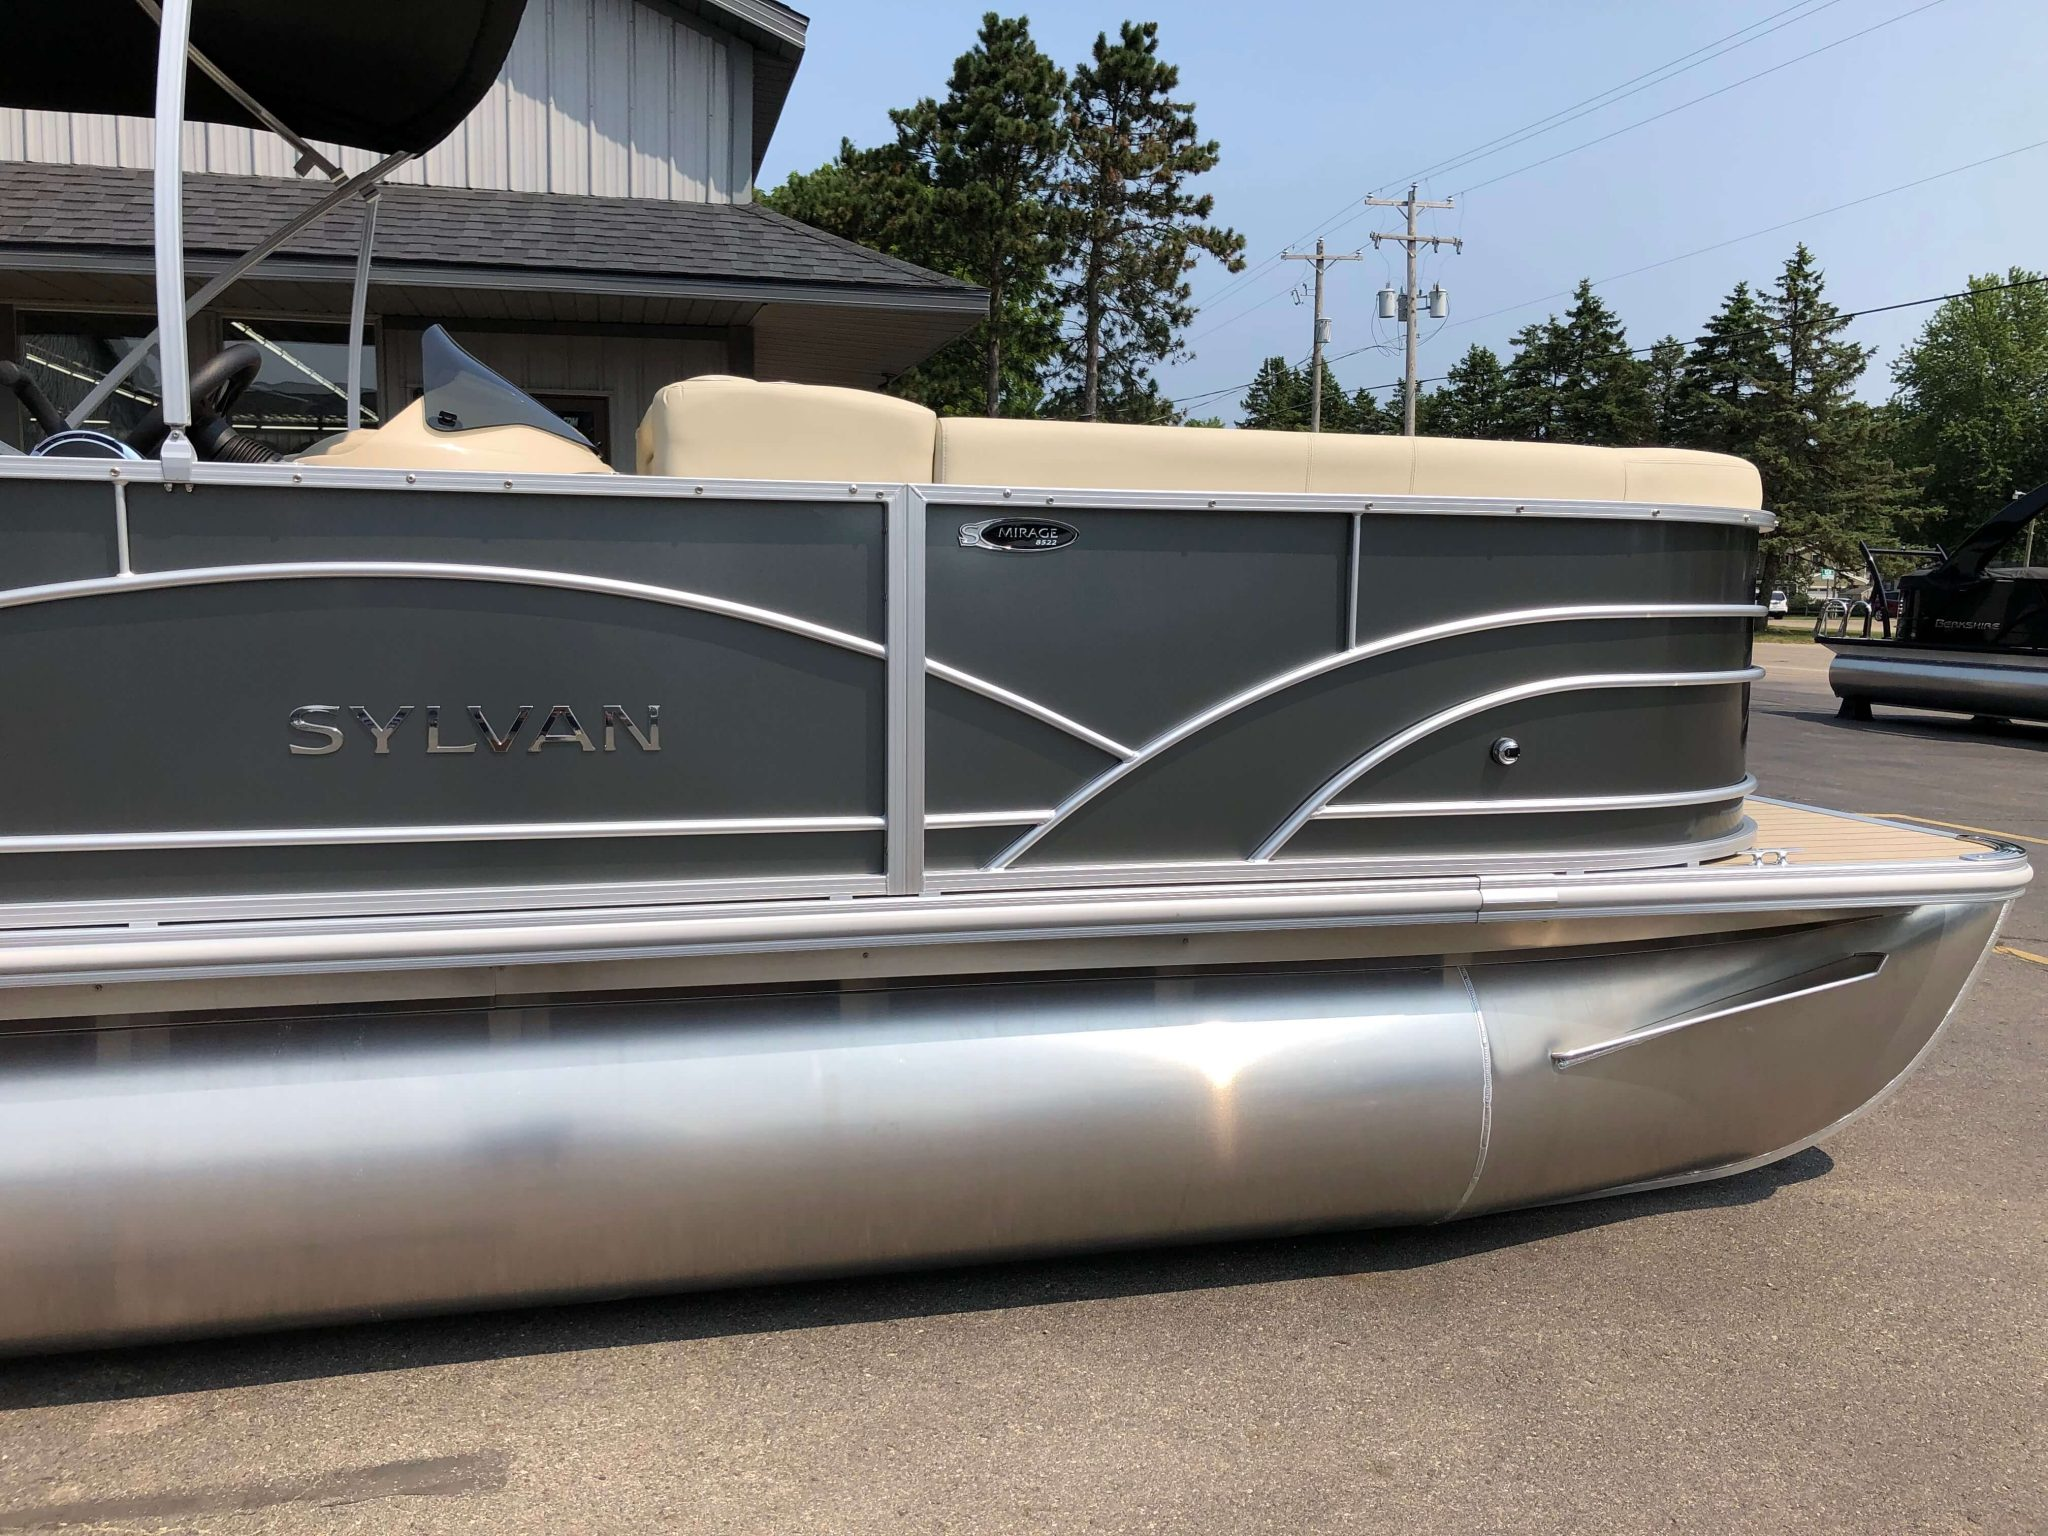 2019 Sylvan 8522 Cruise Carbon Pontoon Boat 8